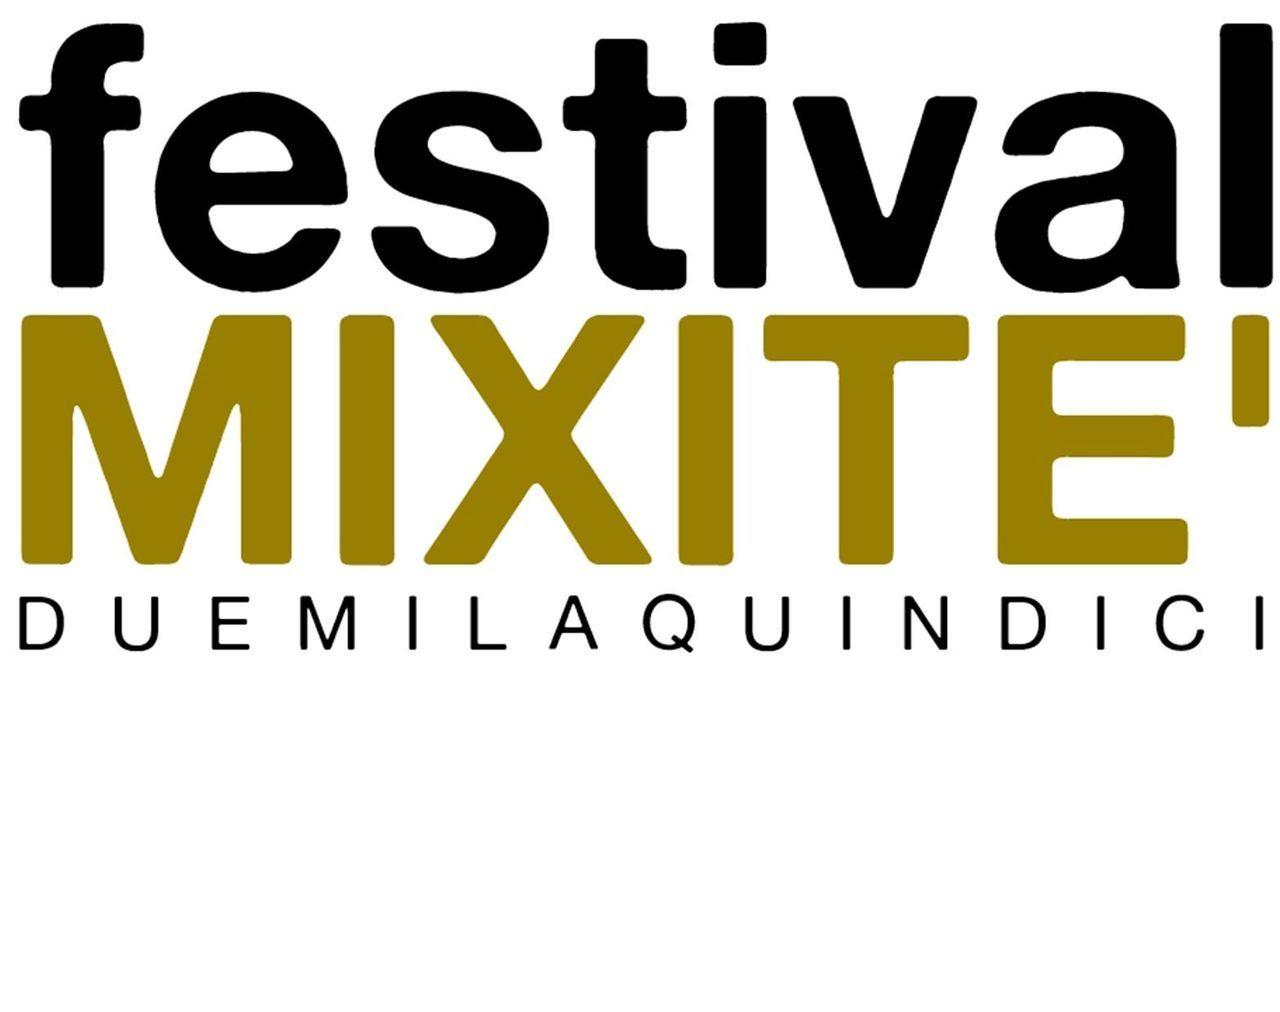 mixitefestival